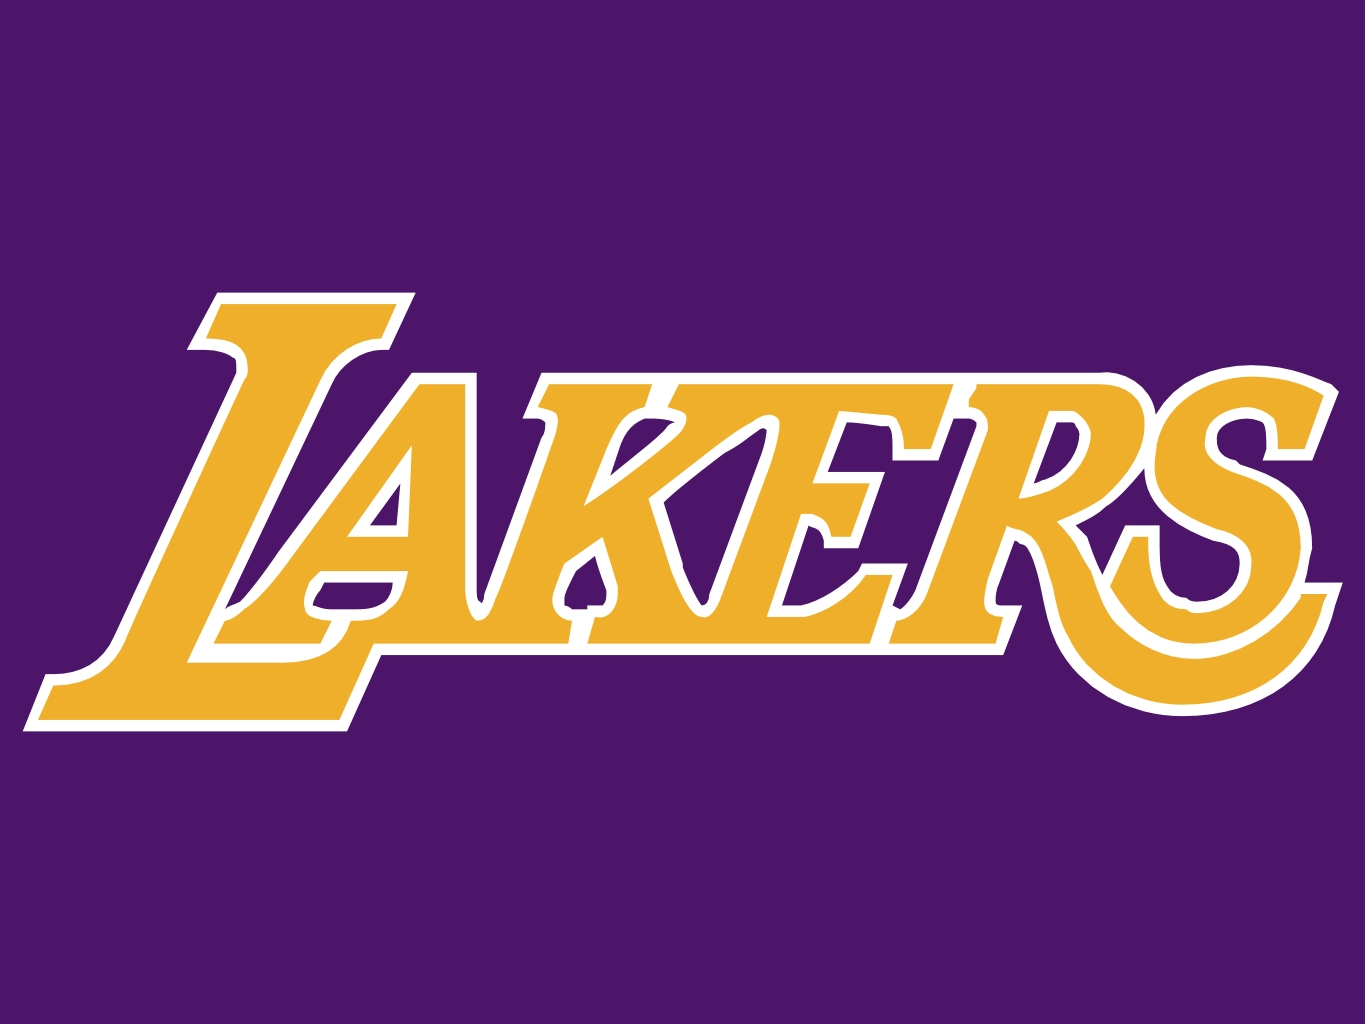 dedc214312a4 Los Angeles Lakers Wallpaper and Background Image